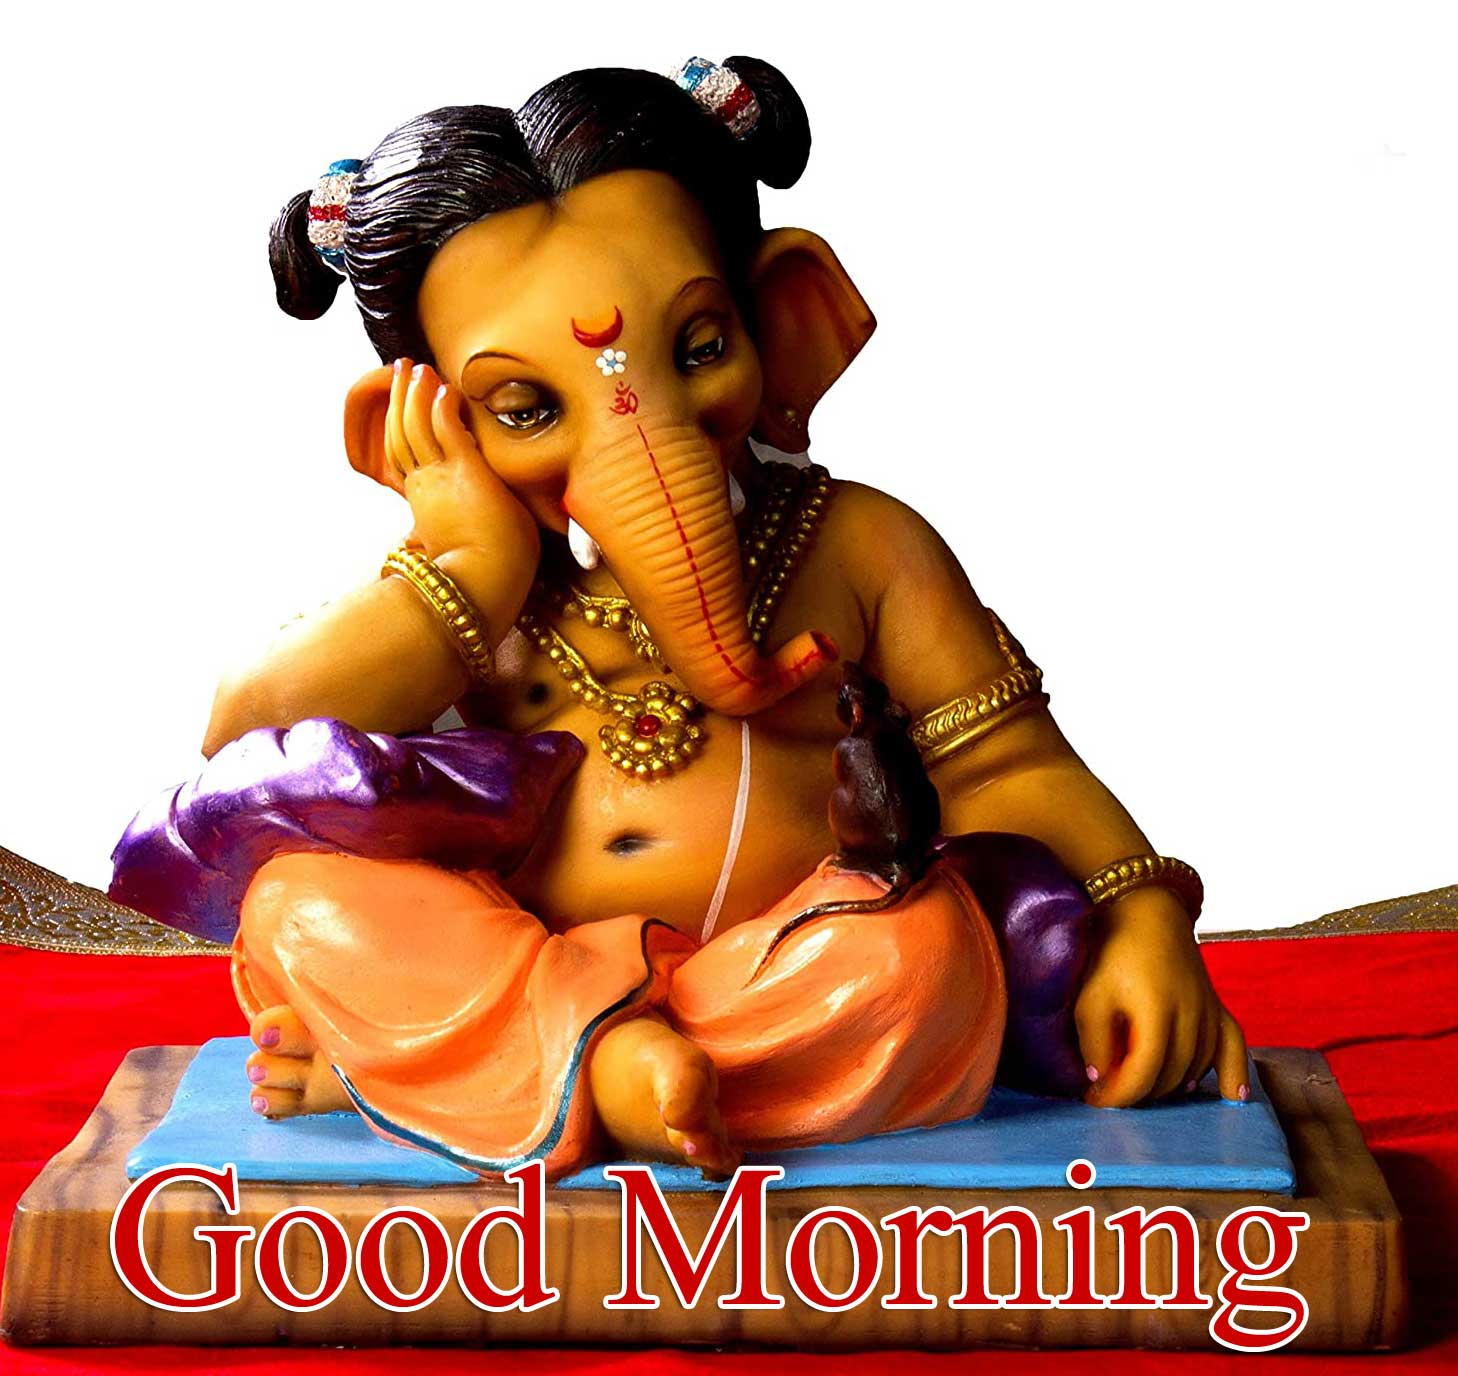 Good Morning Ganpati Bappa Pictures Download